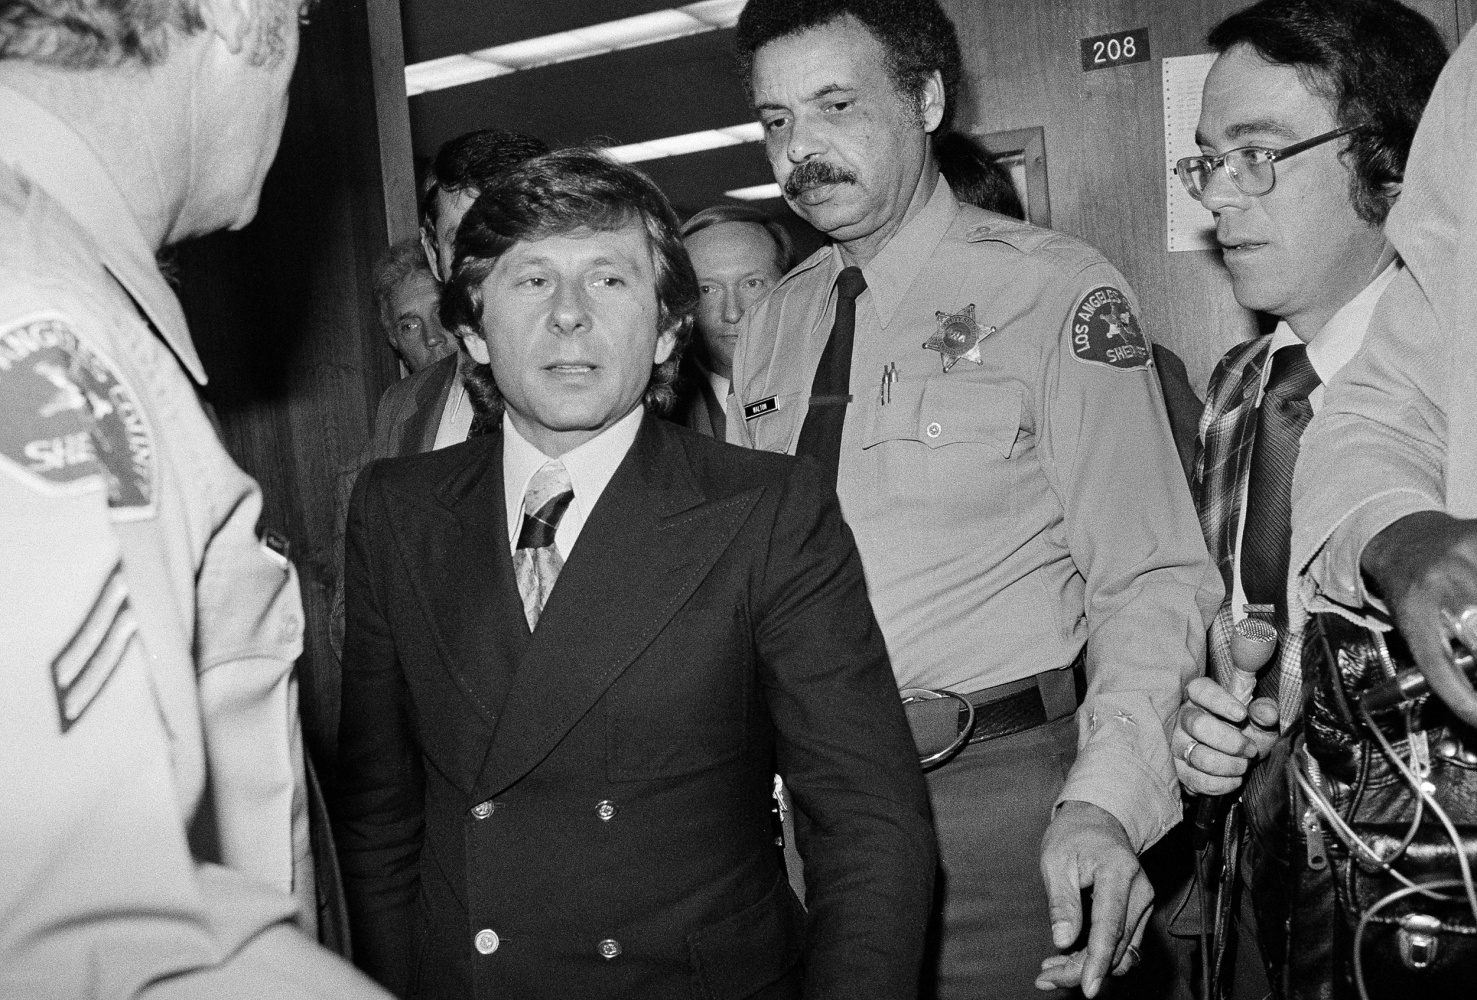 roman polanski Roman polanski is accused of sexual abuse by a third victim roman polanski is a filmmaker known for such films as rosemary's baby, chinatown, and the oscar-winning film the pianist.